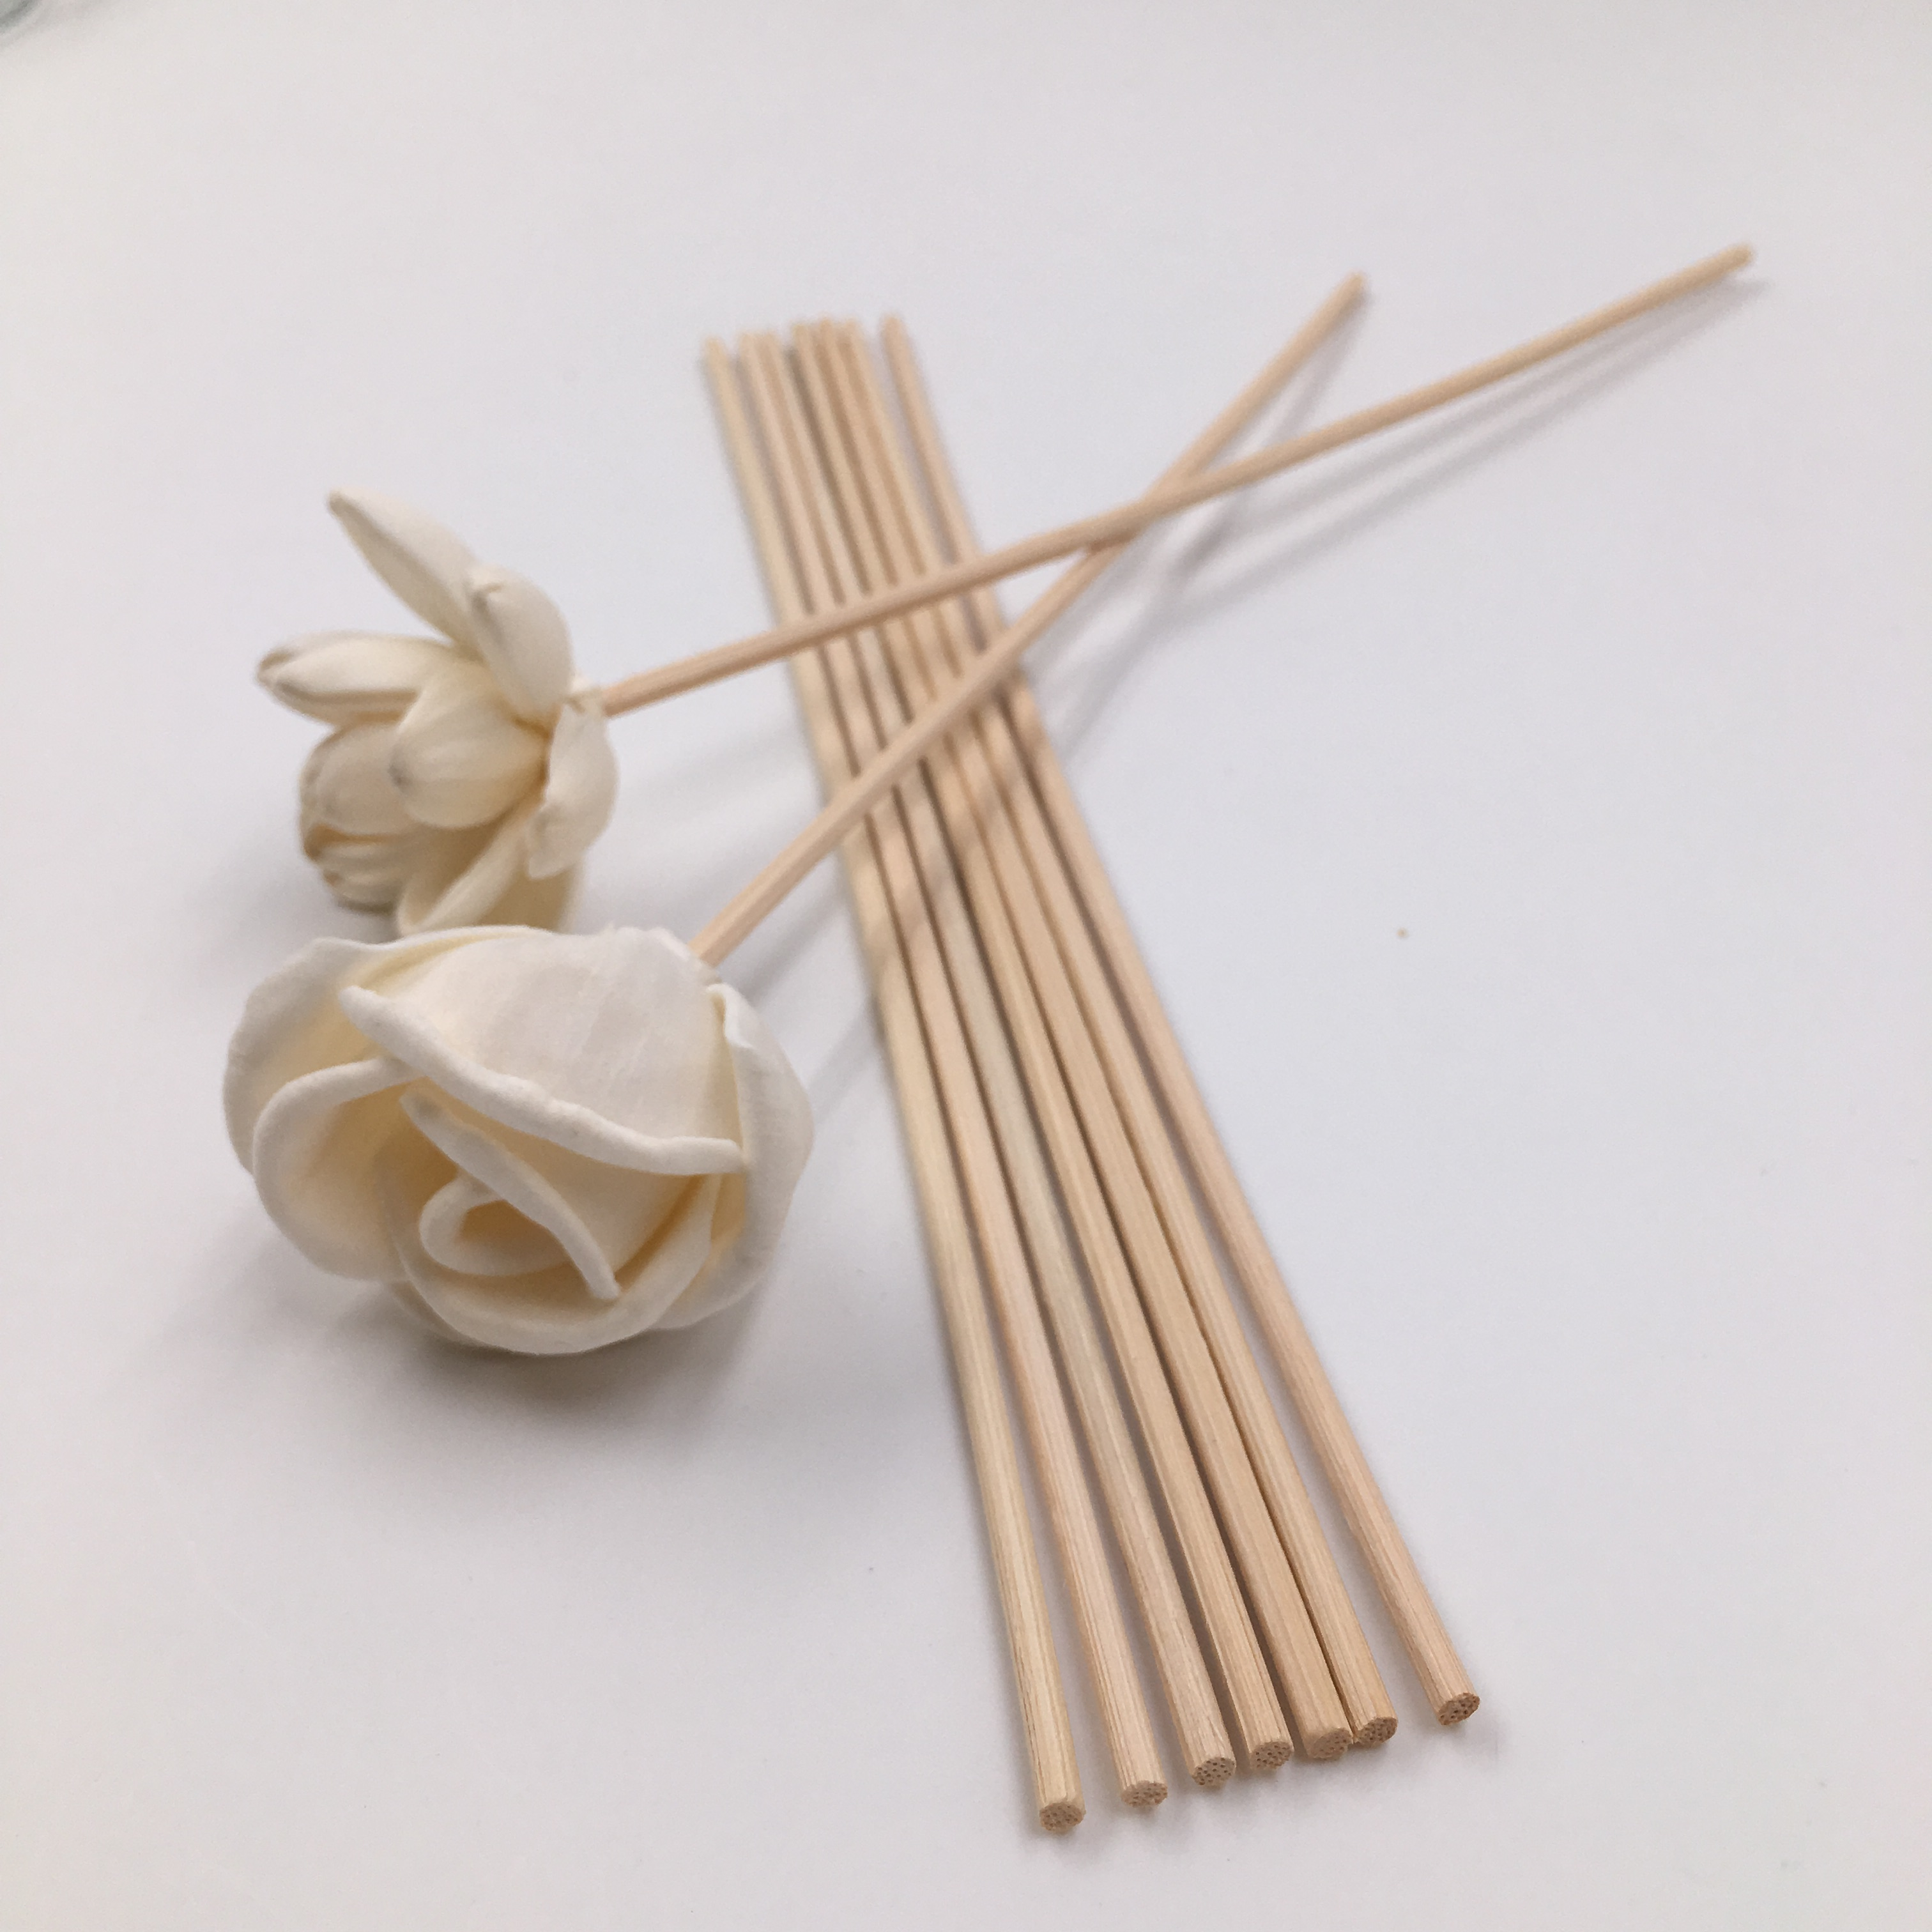 Best customized reed diffuser 꽃 stick 향수